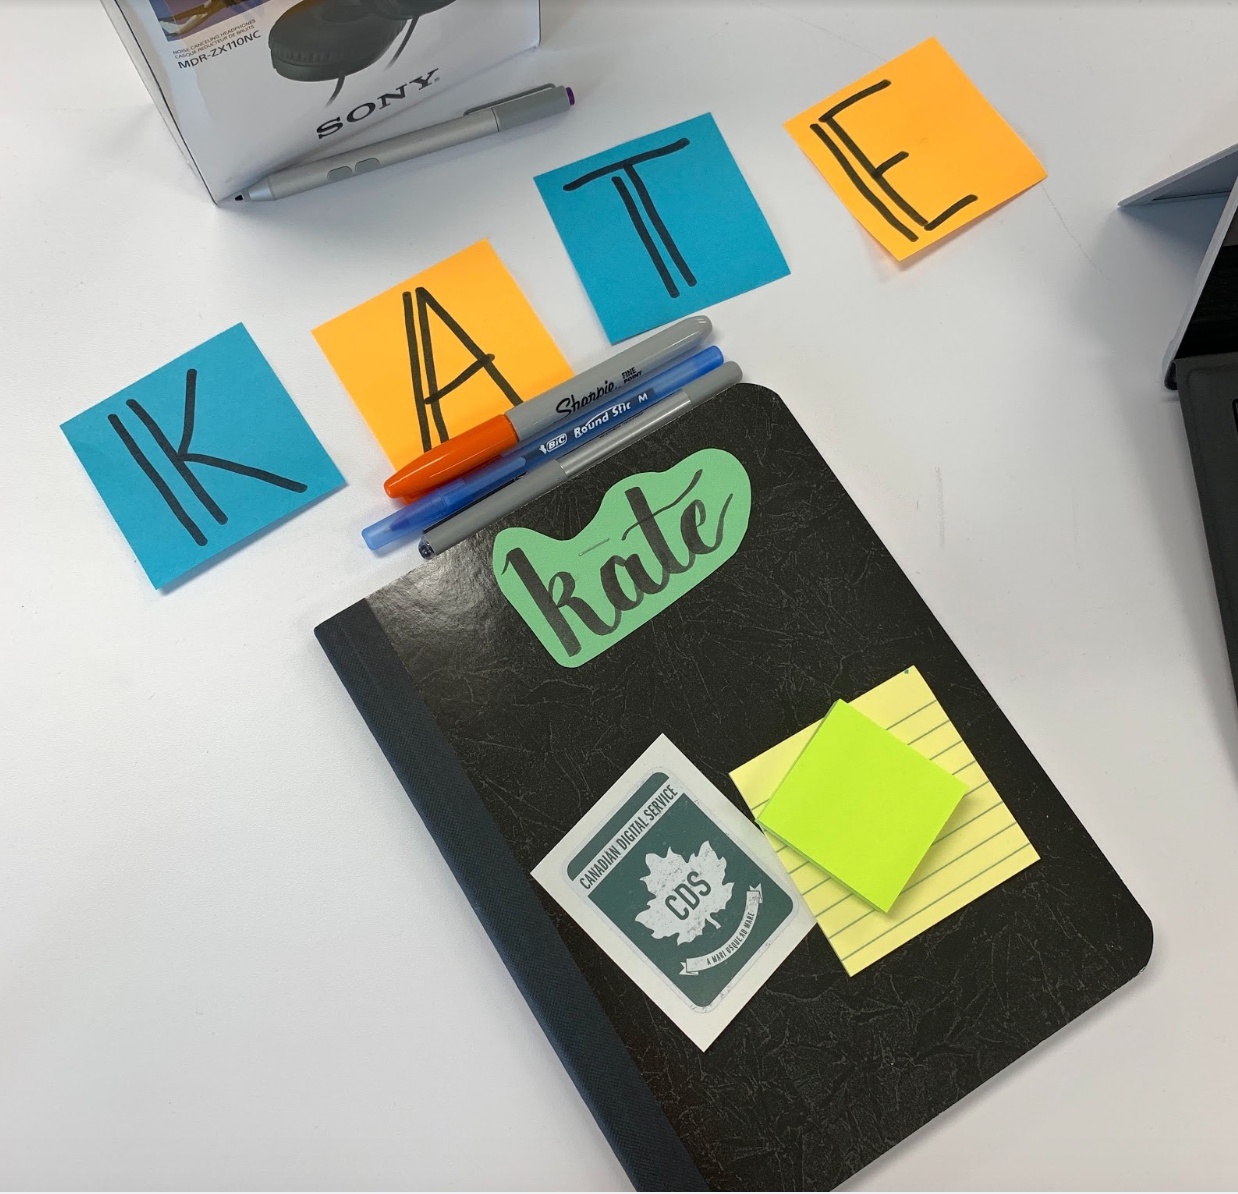 A photo of Kate's work station on her first day, specifically four sticky notes that read KATE, three pens, a notebook with Kate's name, a CDS sticker, and sticky notes.